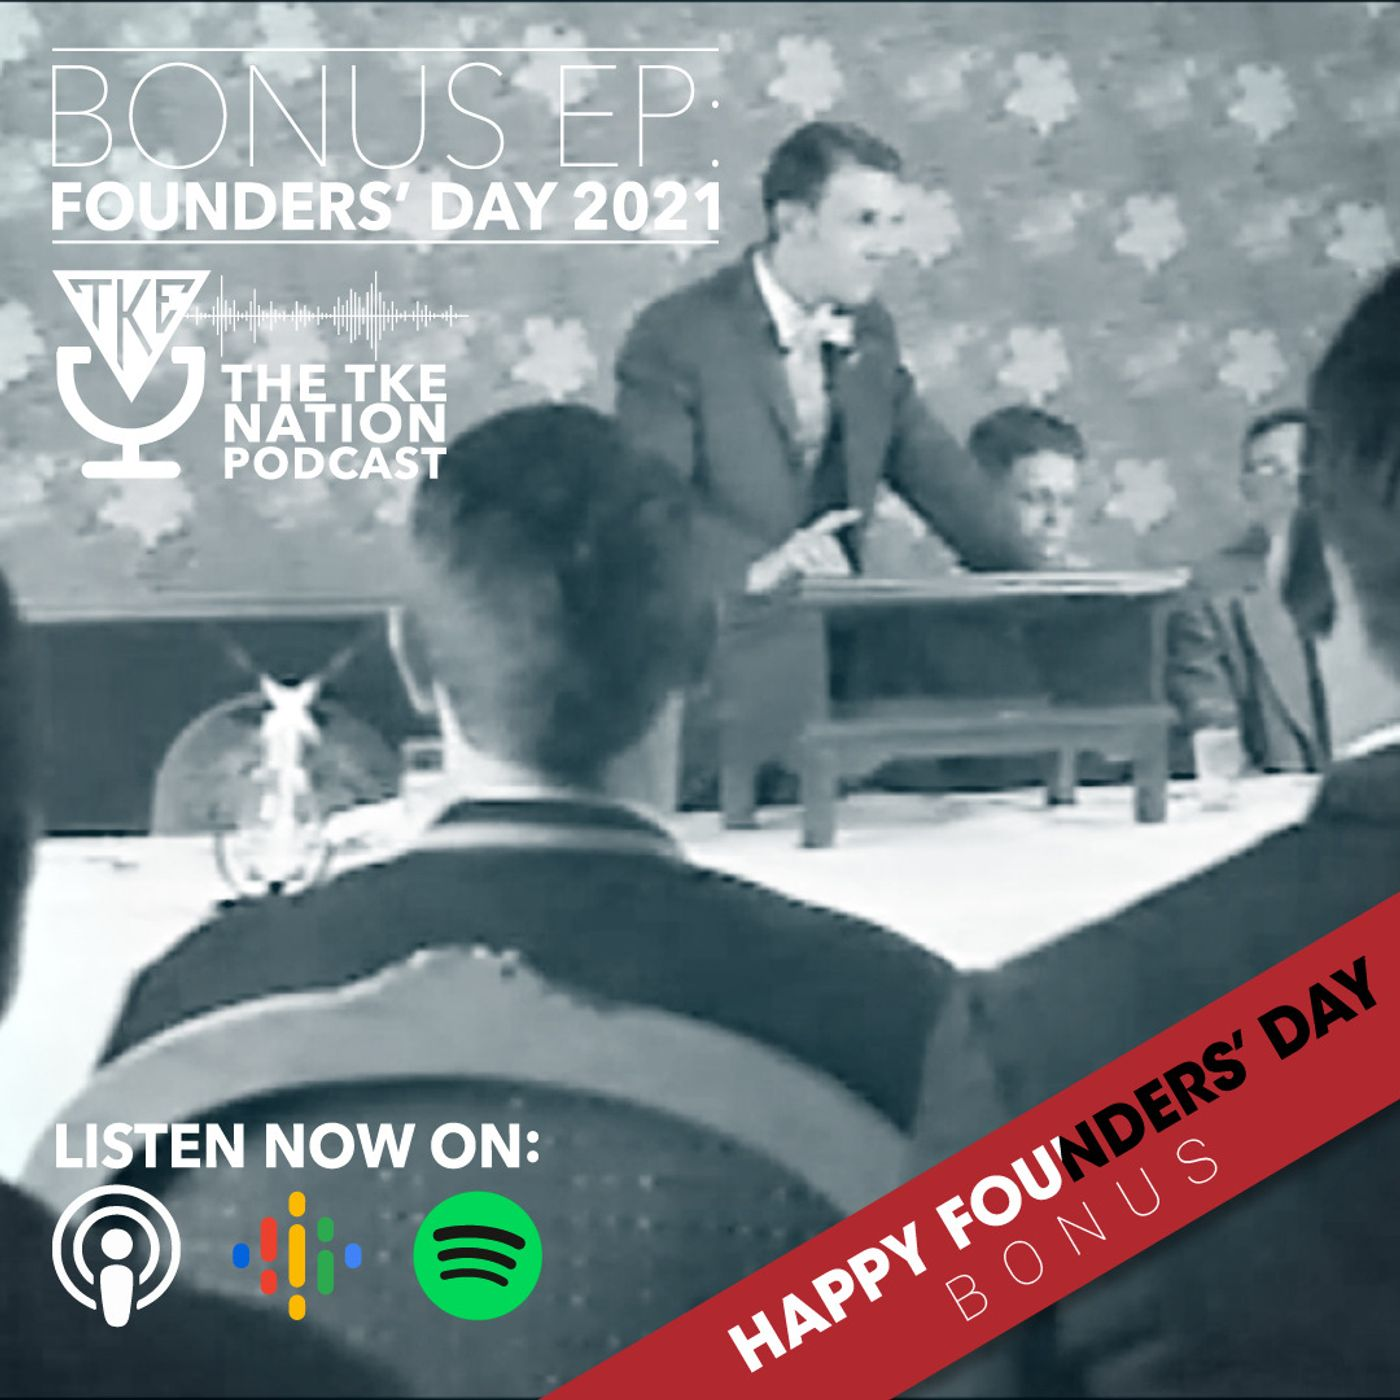 Founders' Day 2021 Bonus Episode